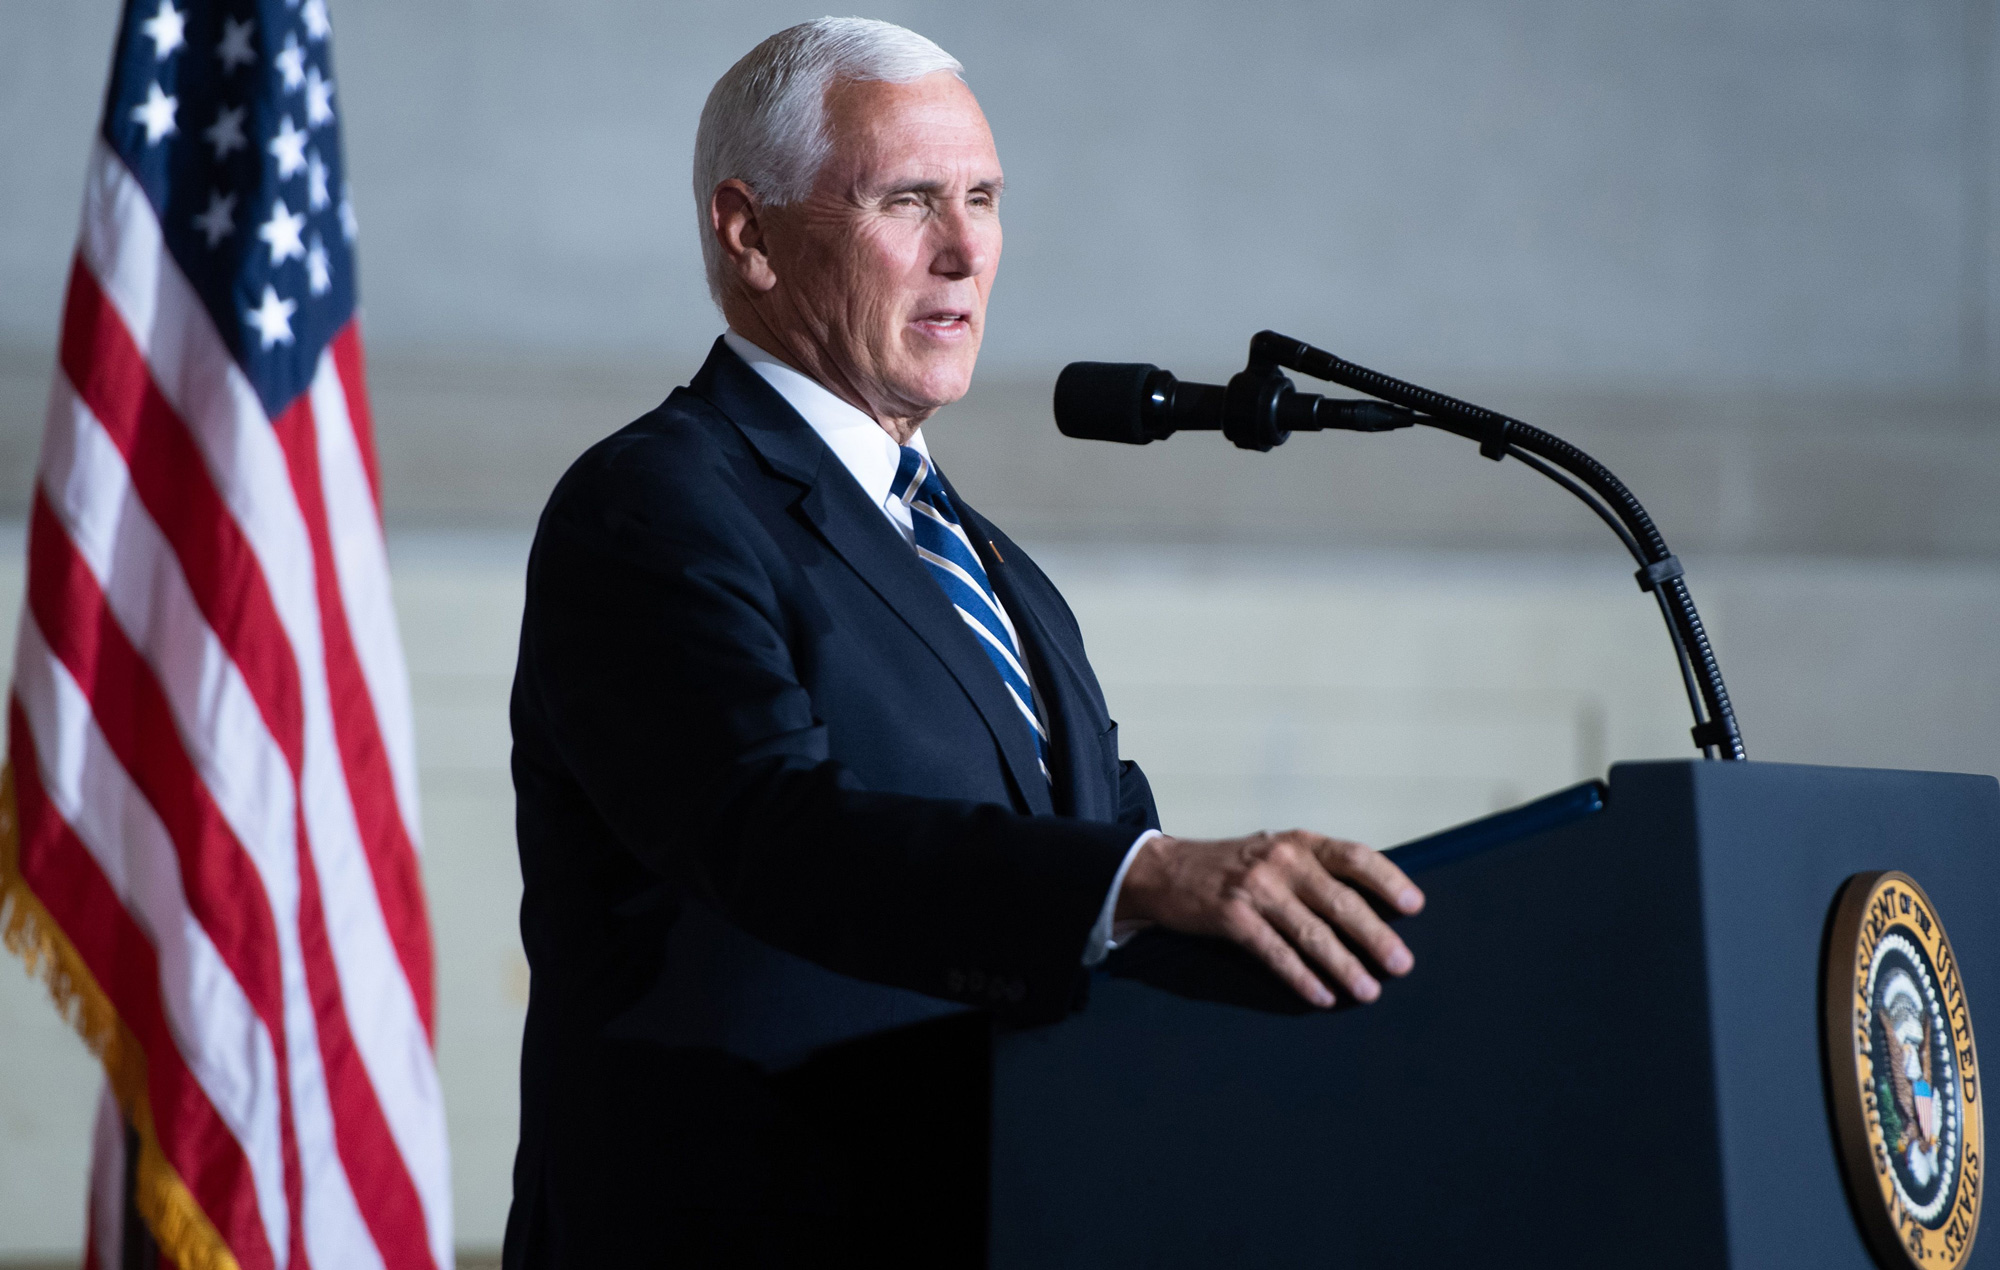 Vice President Mike Pence speaks during the White House Conference on American History at the National Archives in Washington, DC, September 17.